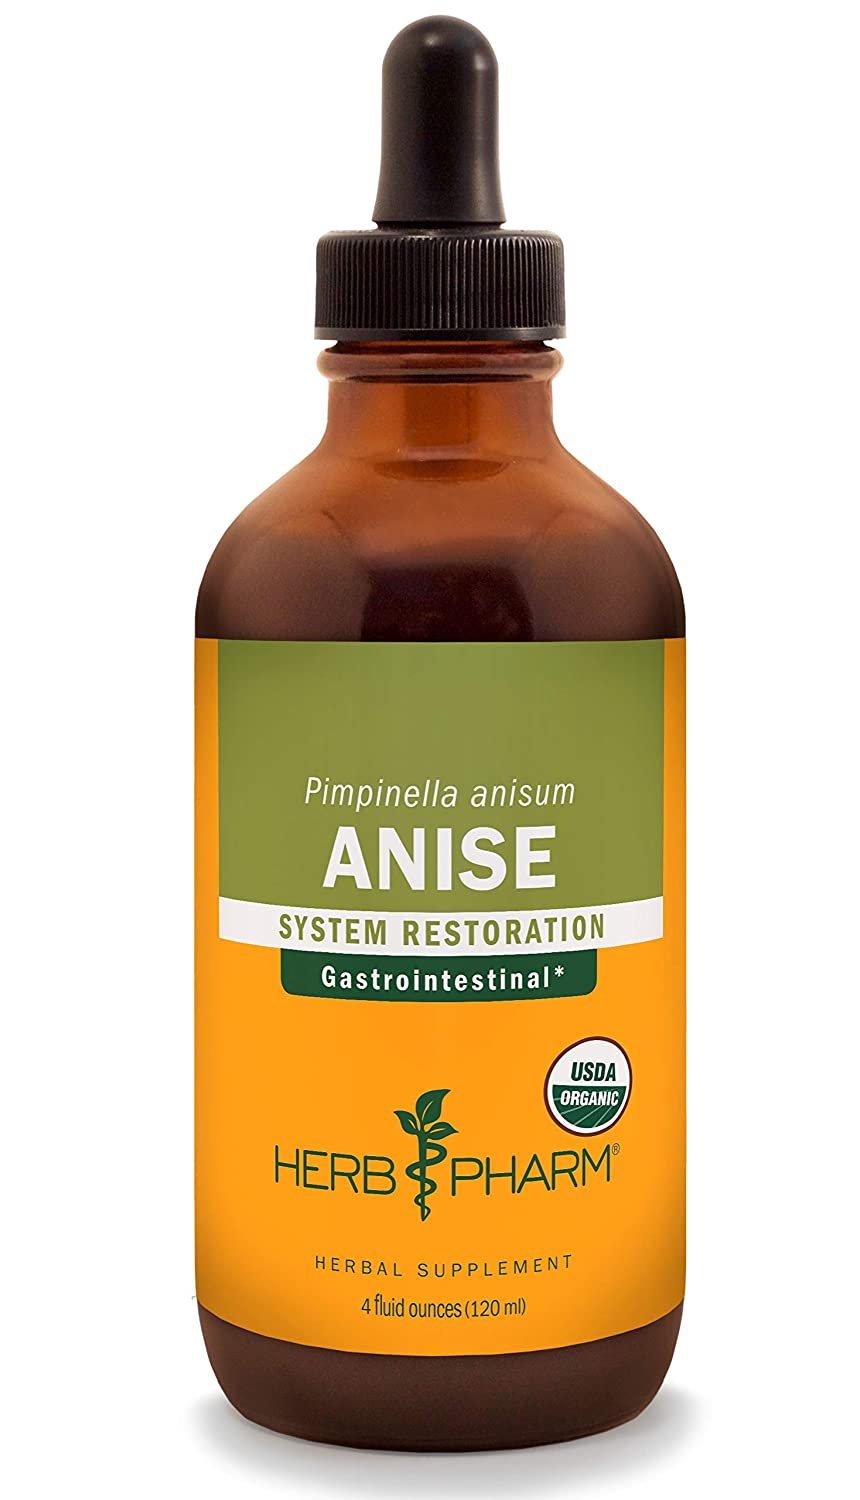 Herb Pharm Certified Organic Anise Liquid Extract for Digestive Support – 4 Ounce